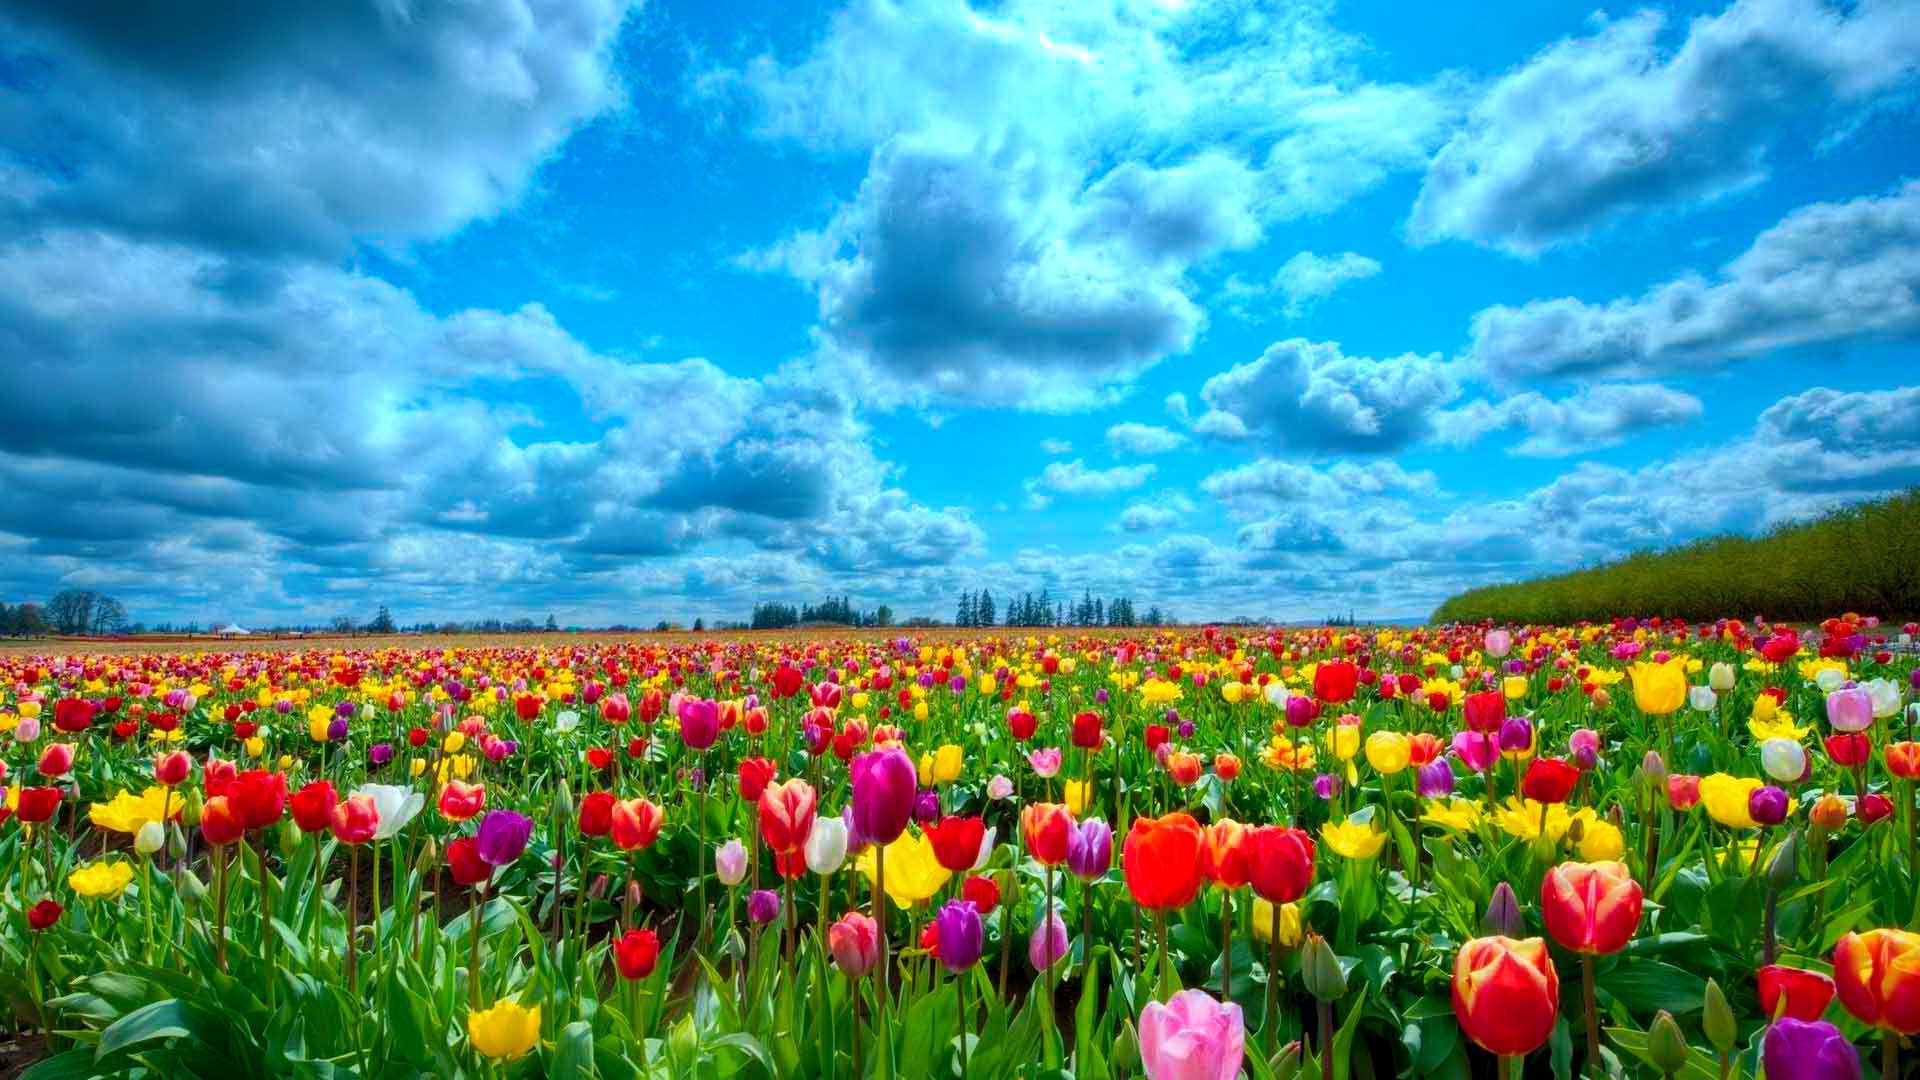 Tulips Wallpapers Hd